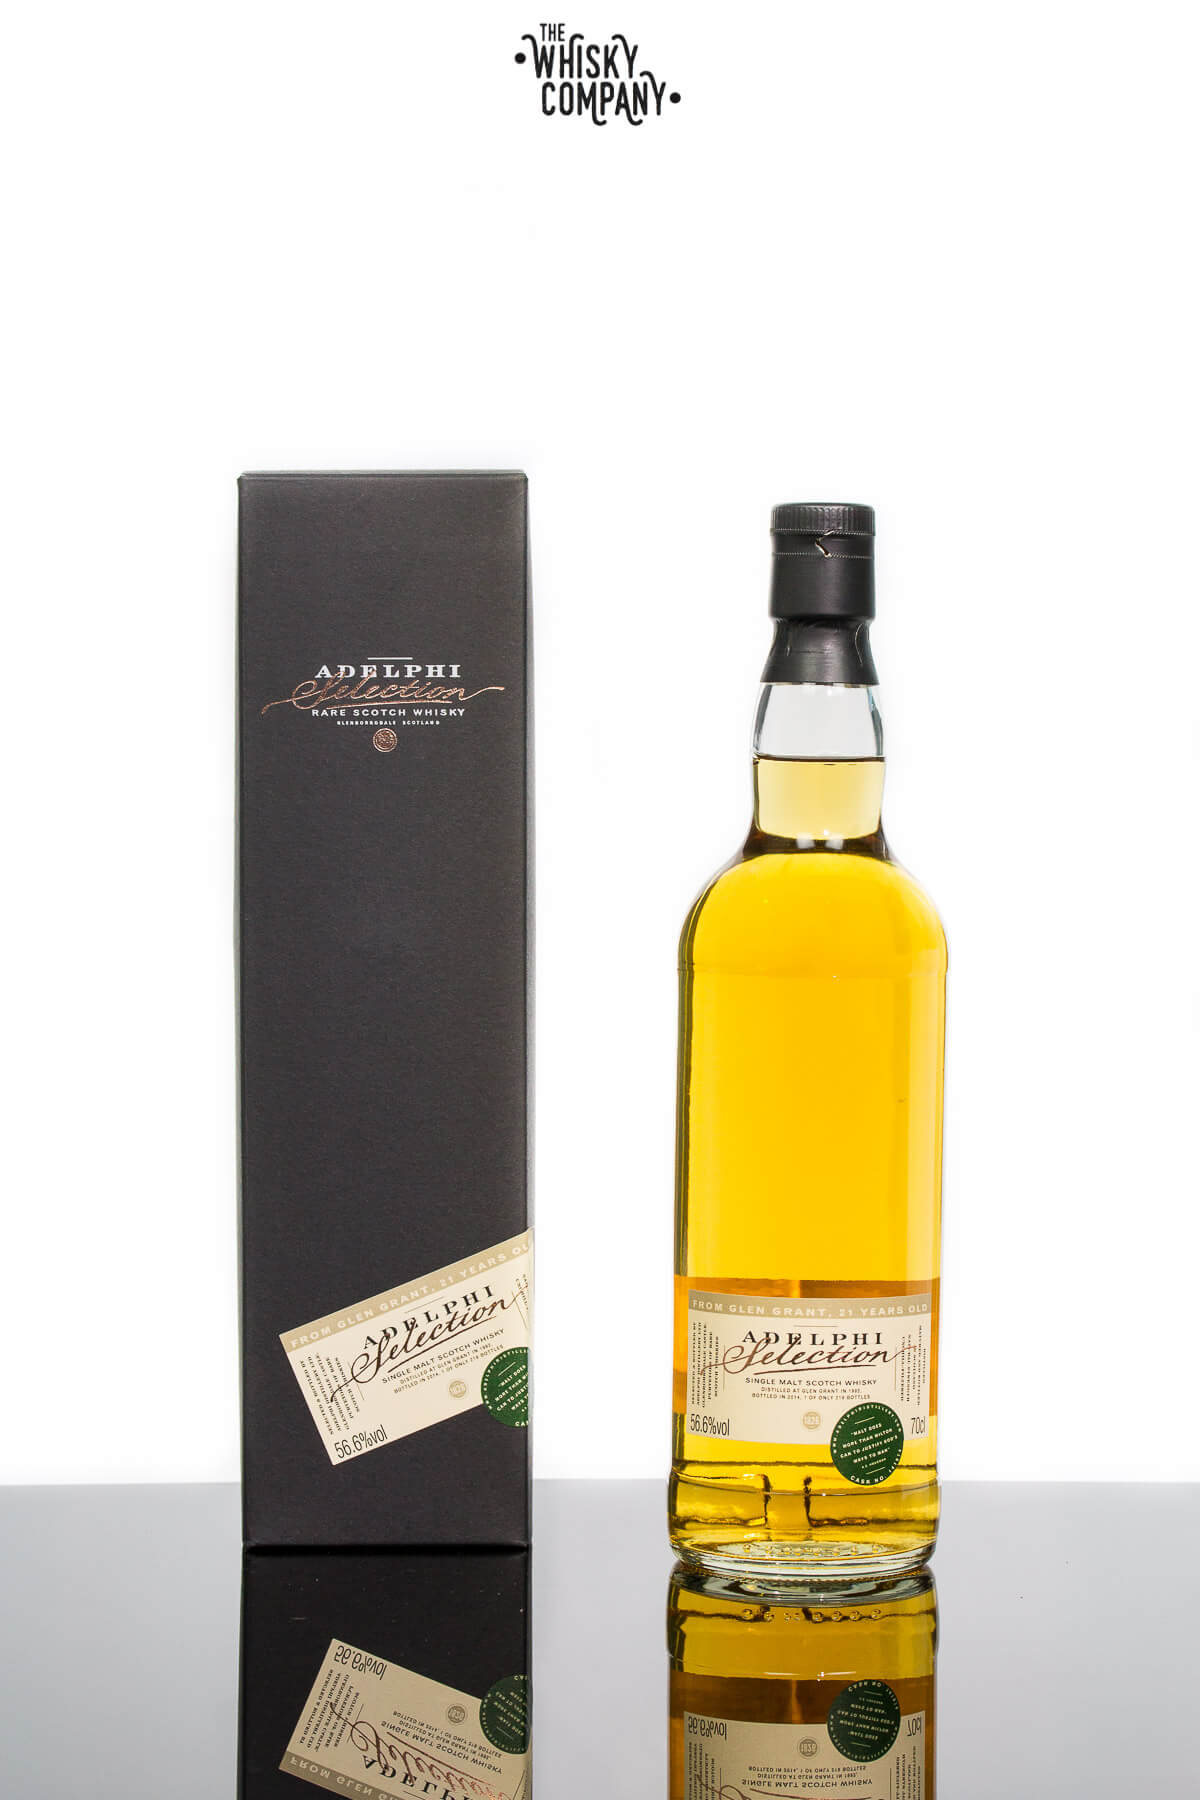 Adelphi 1992 Glen Grant 21 Years Old Single Cask Single Malt Scotch Whisky